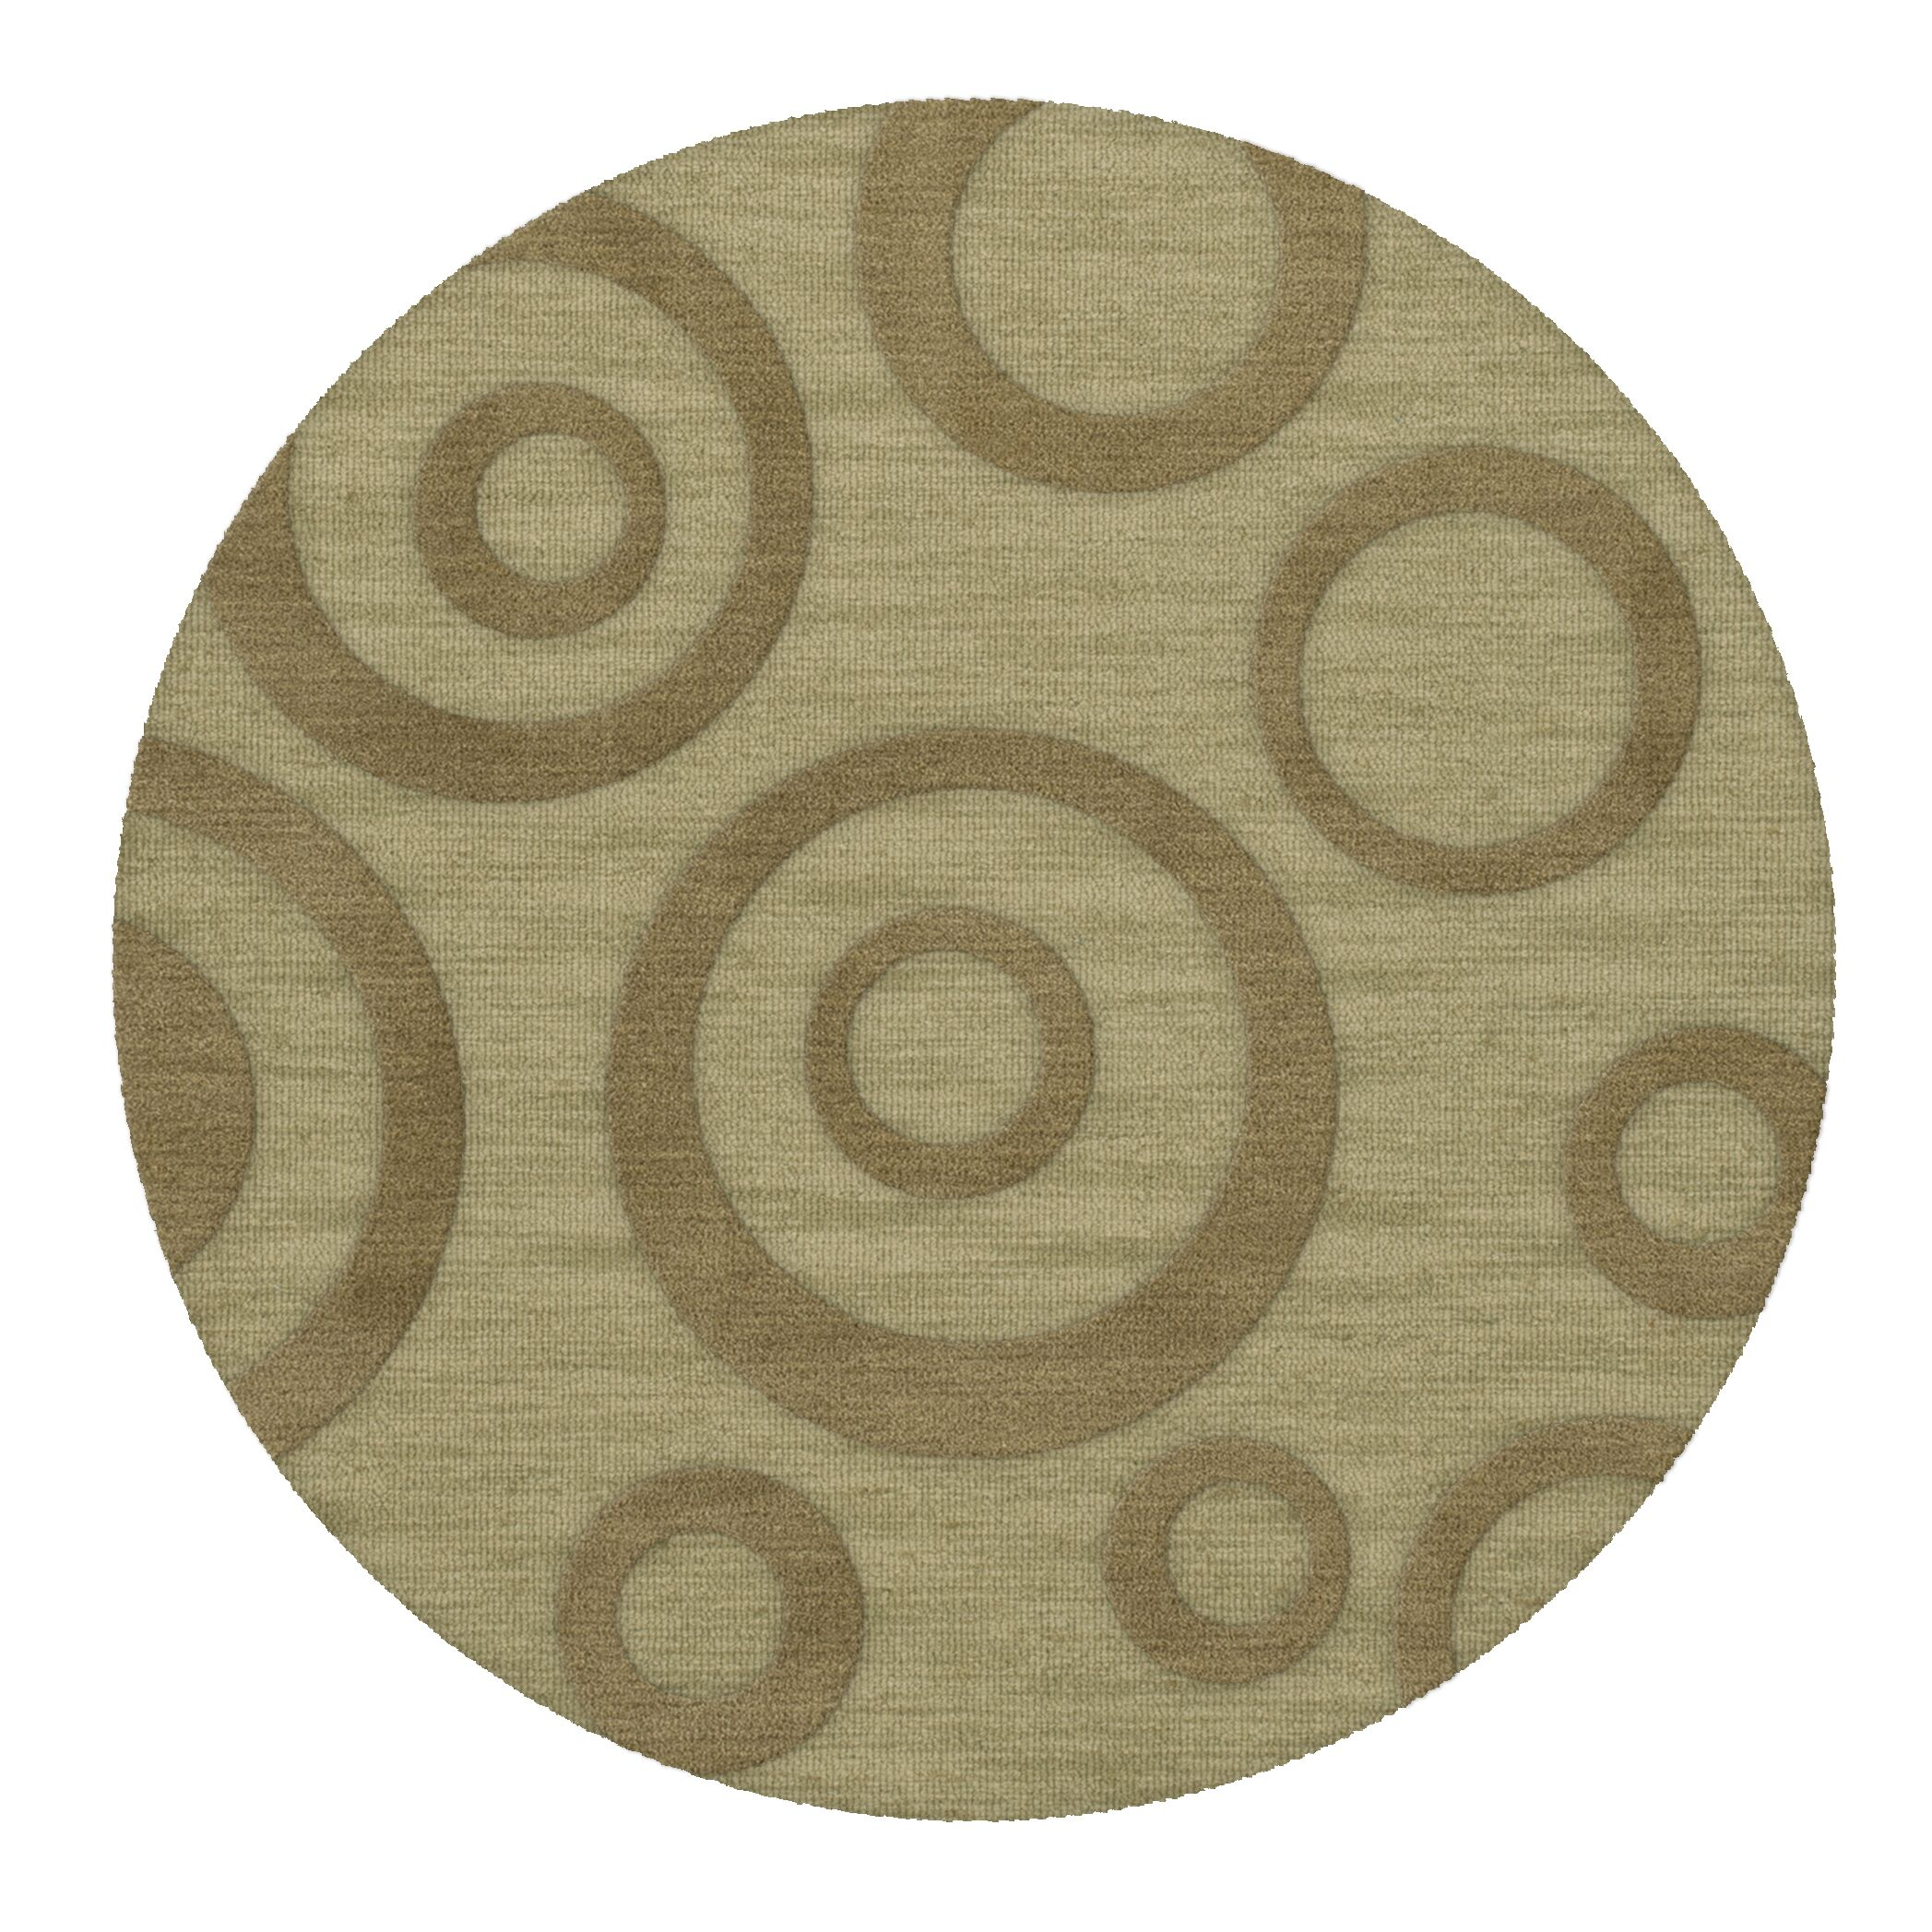 Dover Tufted Wool Marsh Area Rug Rug Size: Round 8'